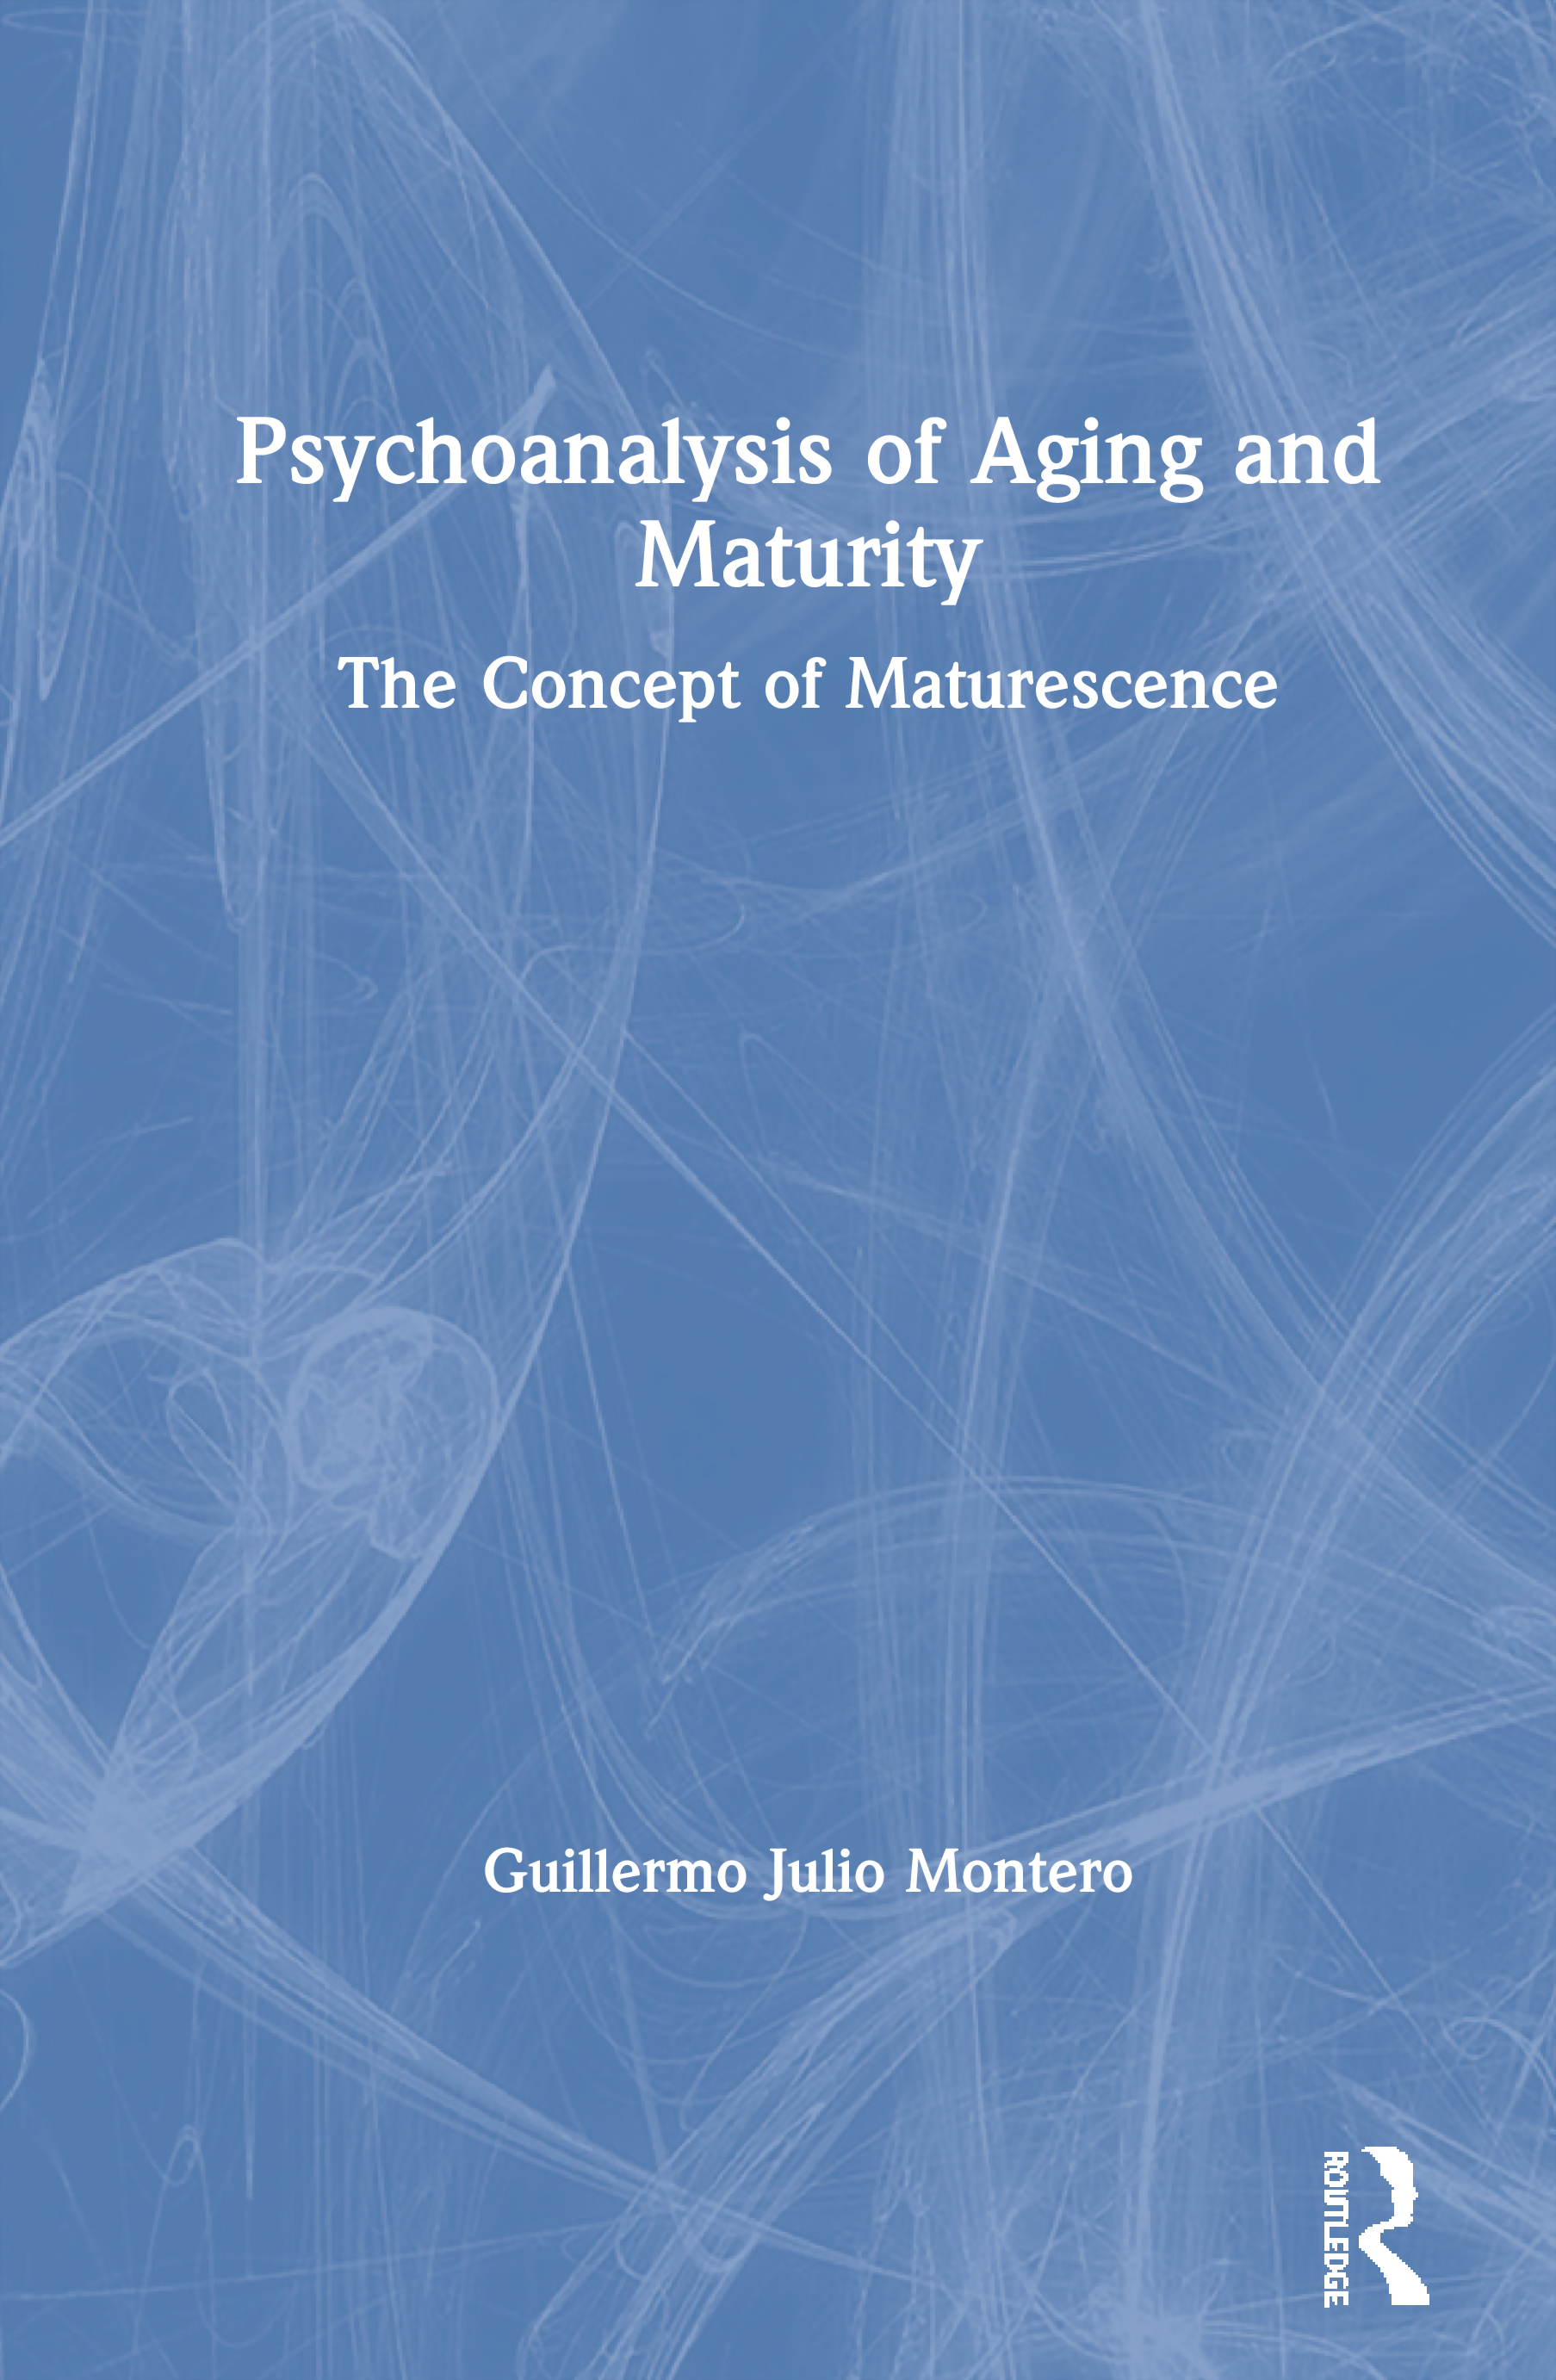 Psychoanalysis of Aging and Maturity: The Concept of Maturescence book cover